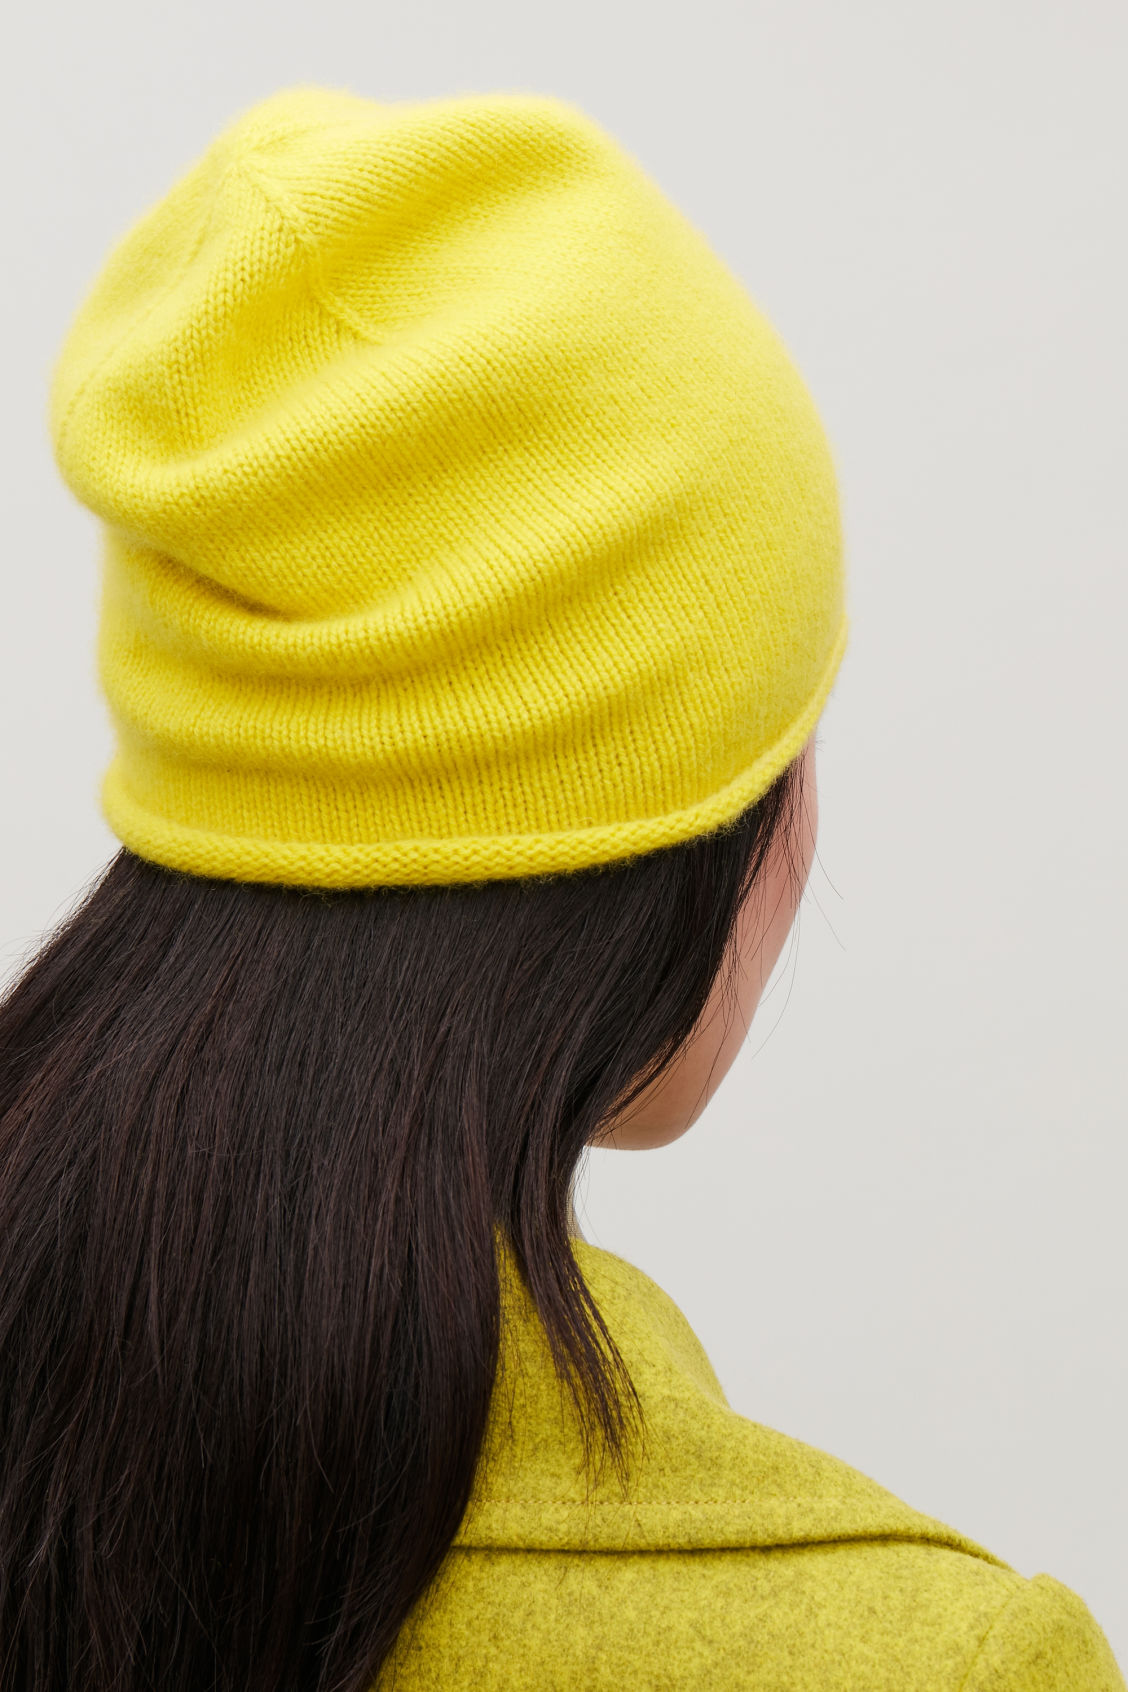 Detailed image of Cos cashmere hat in yellow